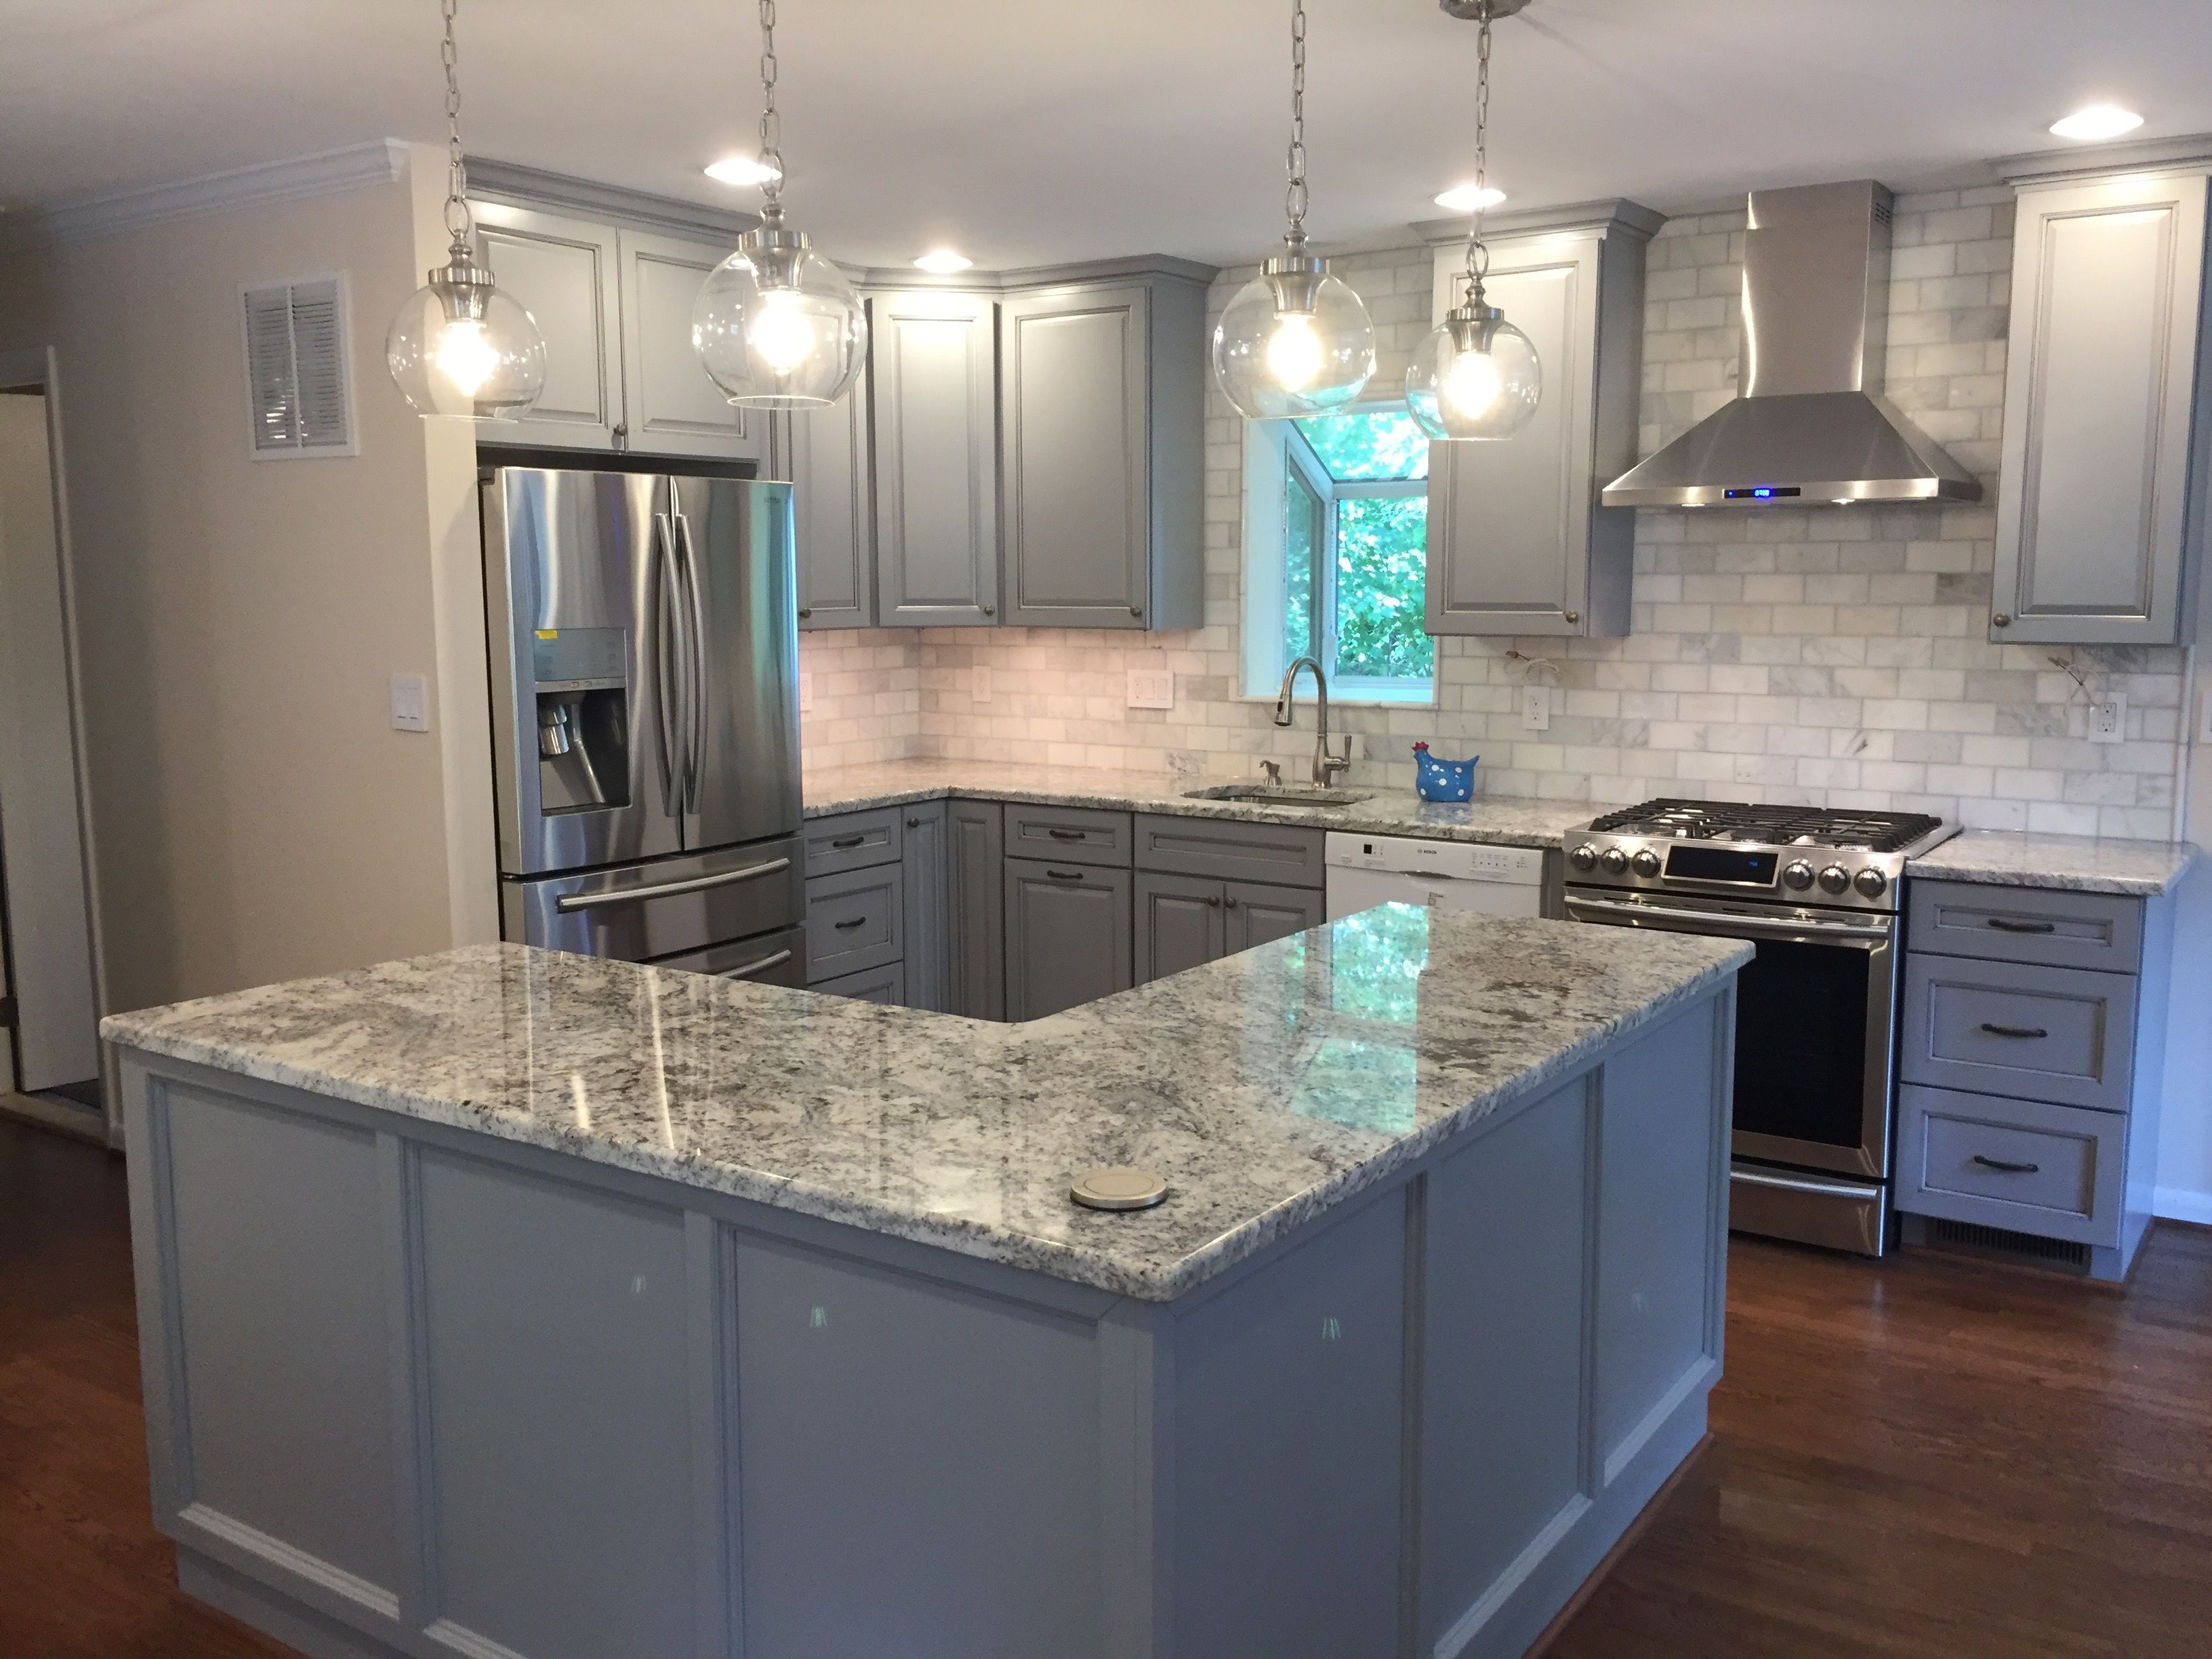 Blue Grey Kitchens Bluegreykitchens Bright Blue Grey Kitchen Created With Baltic Bay Thoma In 2020 Grey Blue Kitchen Blue Gray Kitchen Cabinets Kitchen Decor Lighting